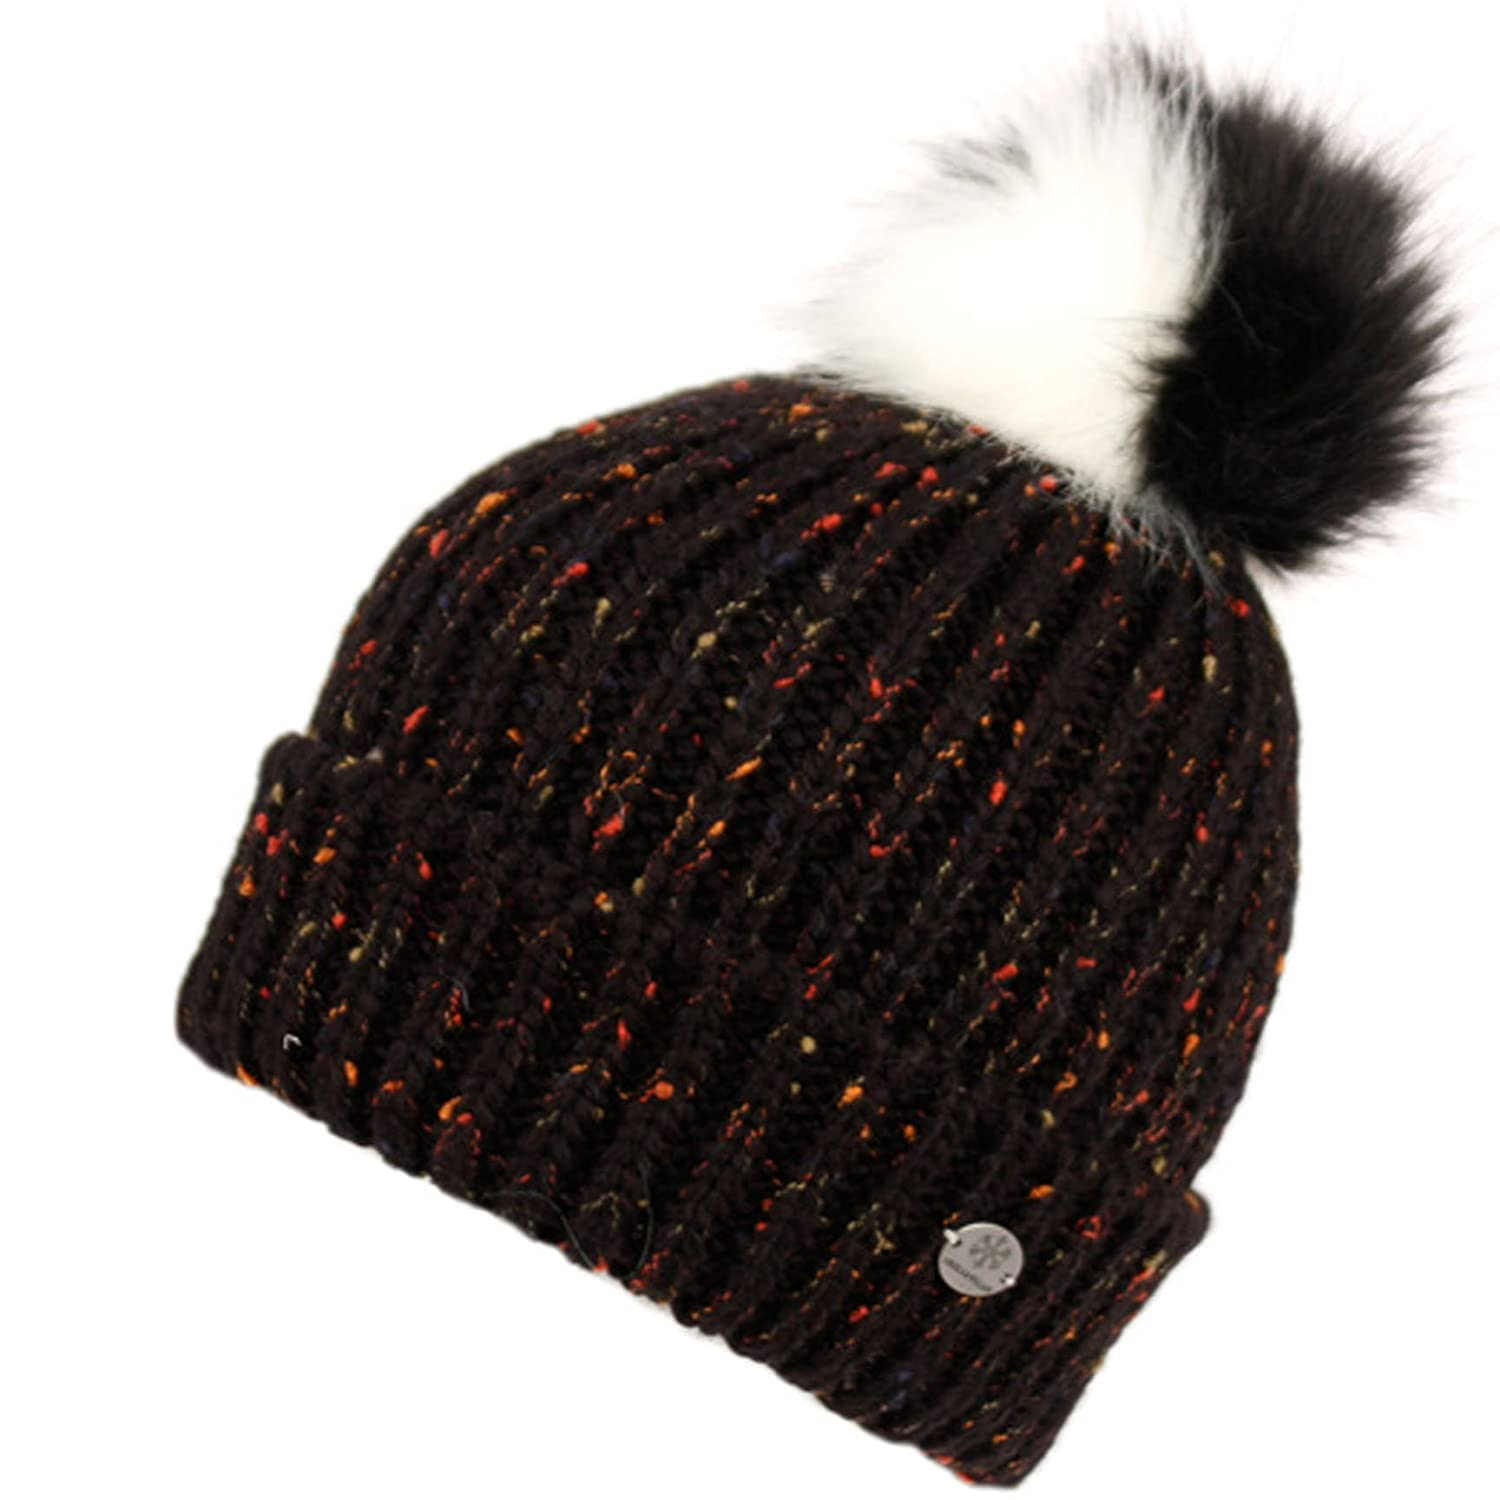 e1c0fddd4 Confetti Knit Beanie - Thick Soft Warm Winter Hat With Colorful Faux ...